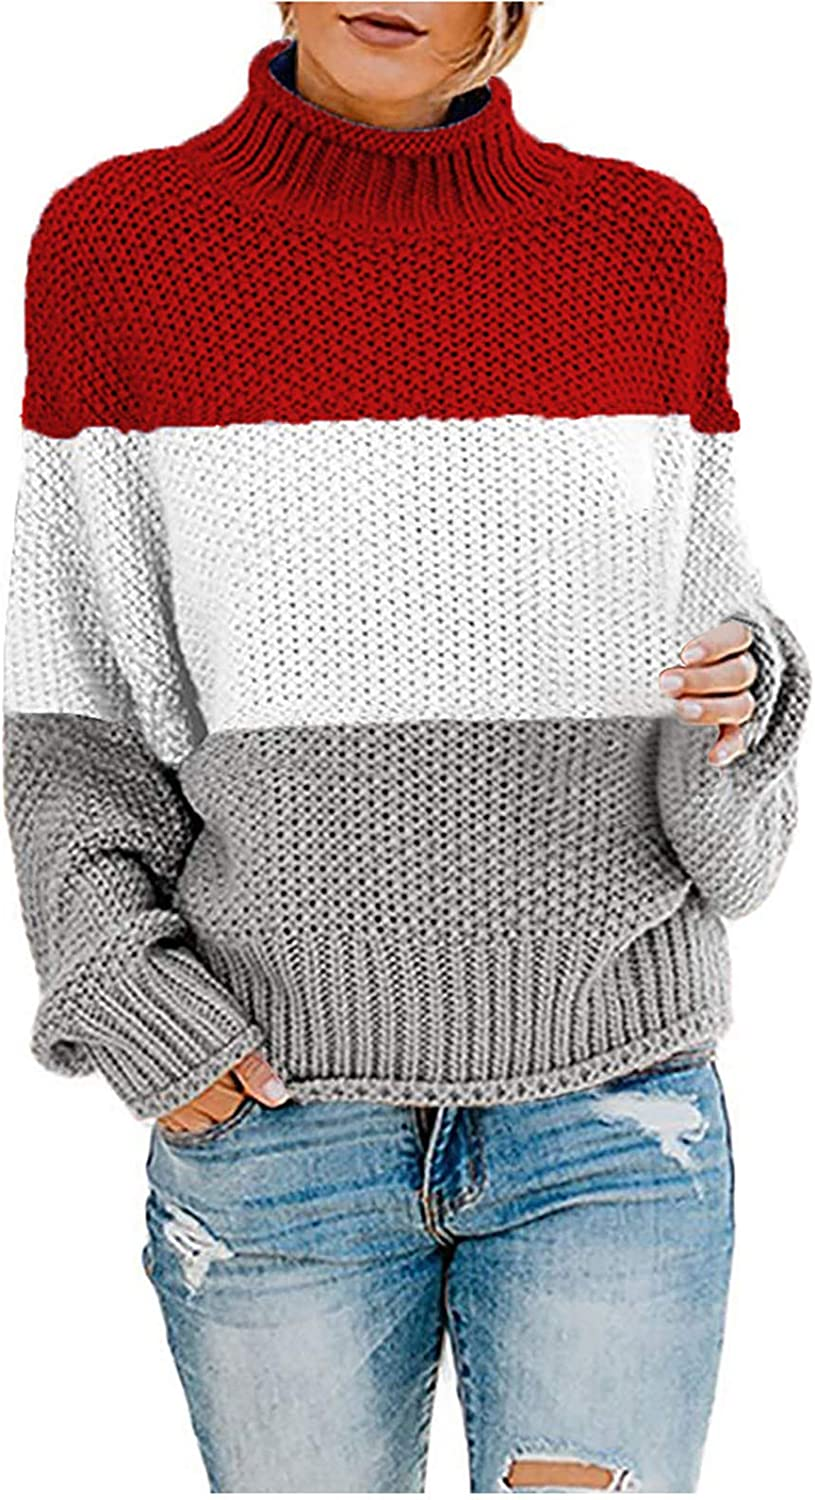 Sweaters for Women, Womens Fashion Turtleneck Long Sleeve Knit Sweater Casual Loose Knitted Pullover Jumper Blouse Tops